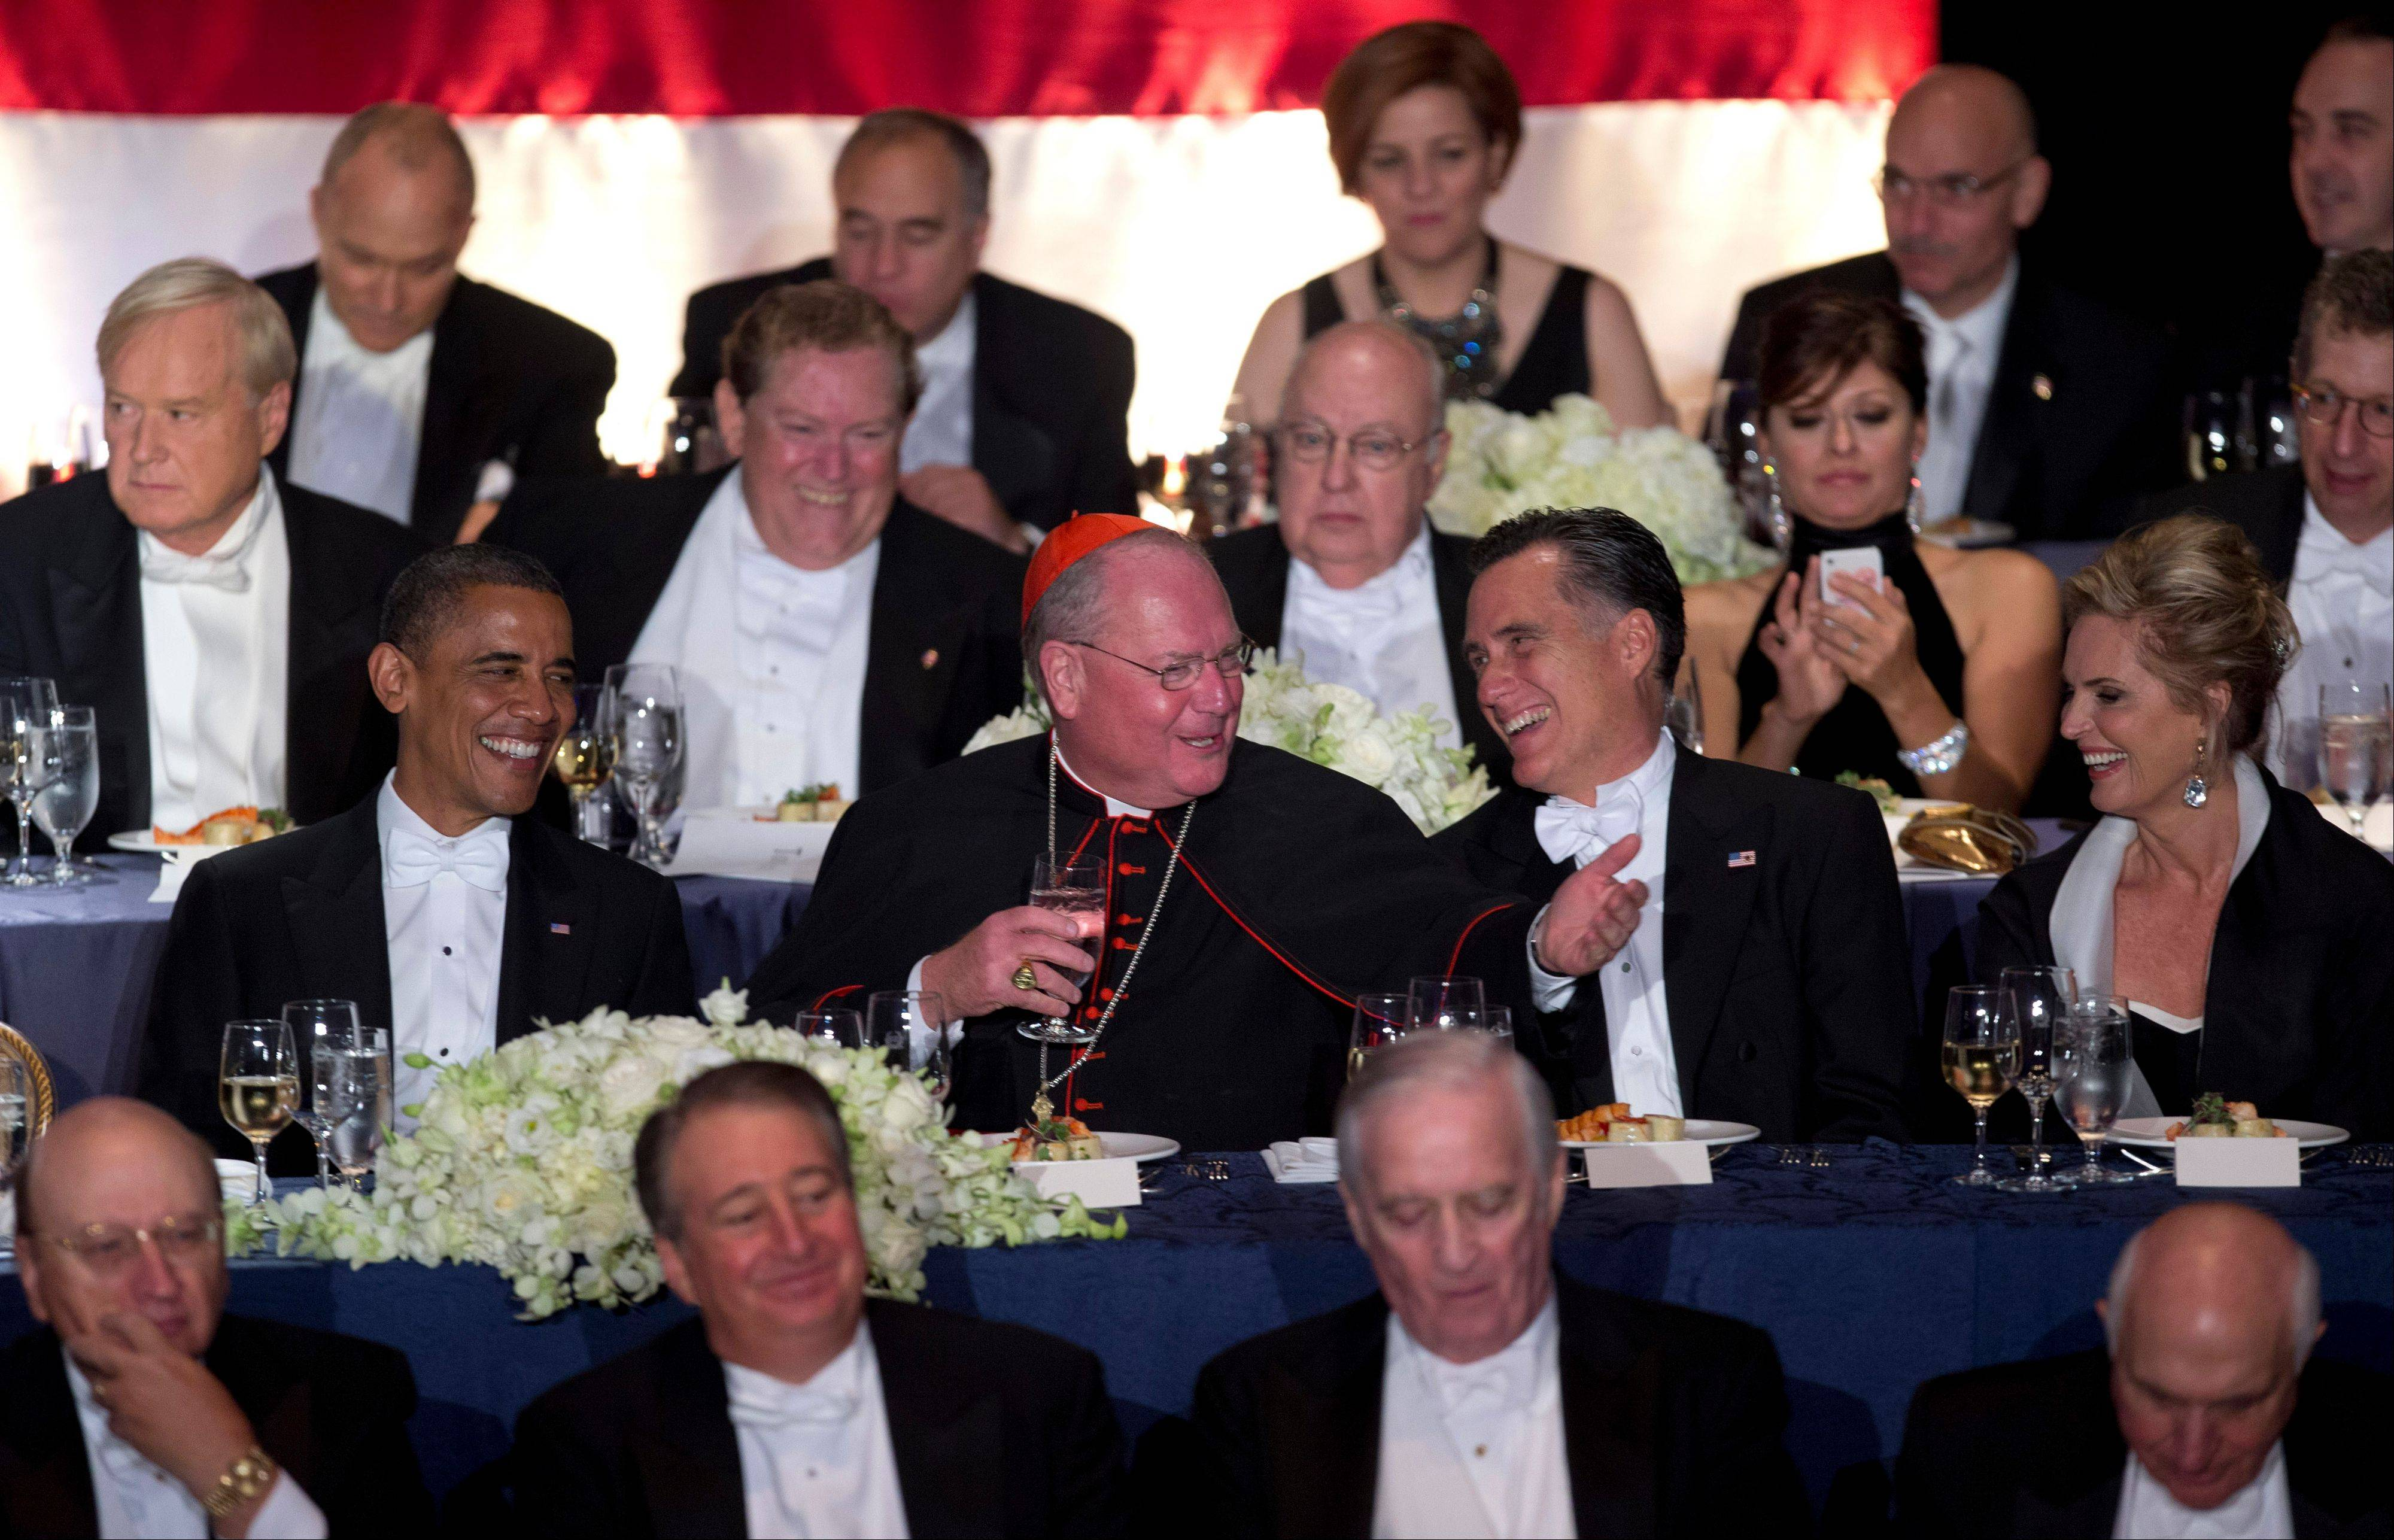 ASSOCIATED PRESSYou might think at first that Cardinal Timothy Dolan was strategically placed between presidential candidates President Barack and former Gov. Mitt Romney as a peacekeeper. But the 67th annual Alfred. E. Smith Memorial Foundation Dinner Thursday in New York has been campaign tradition where comic relief prevails. That's Ann Romney, the governor's wife, at the far right.